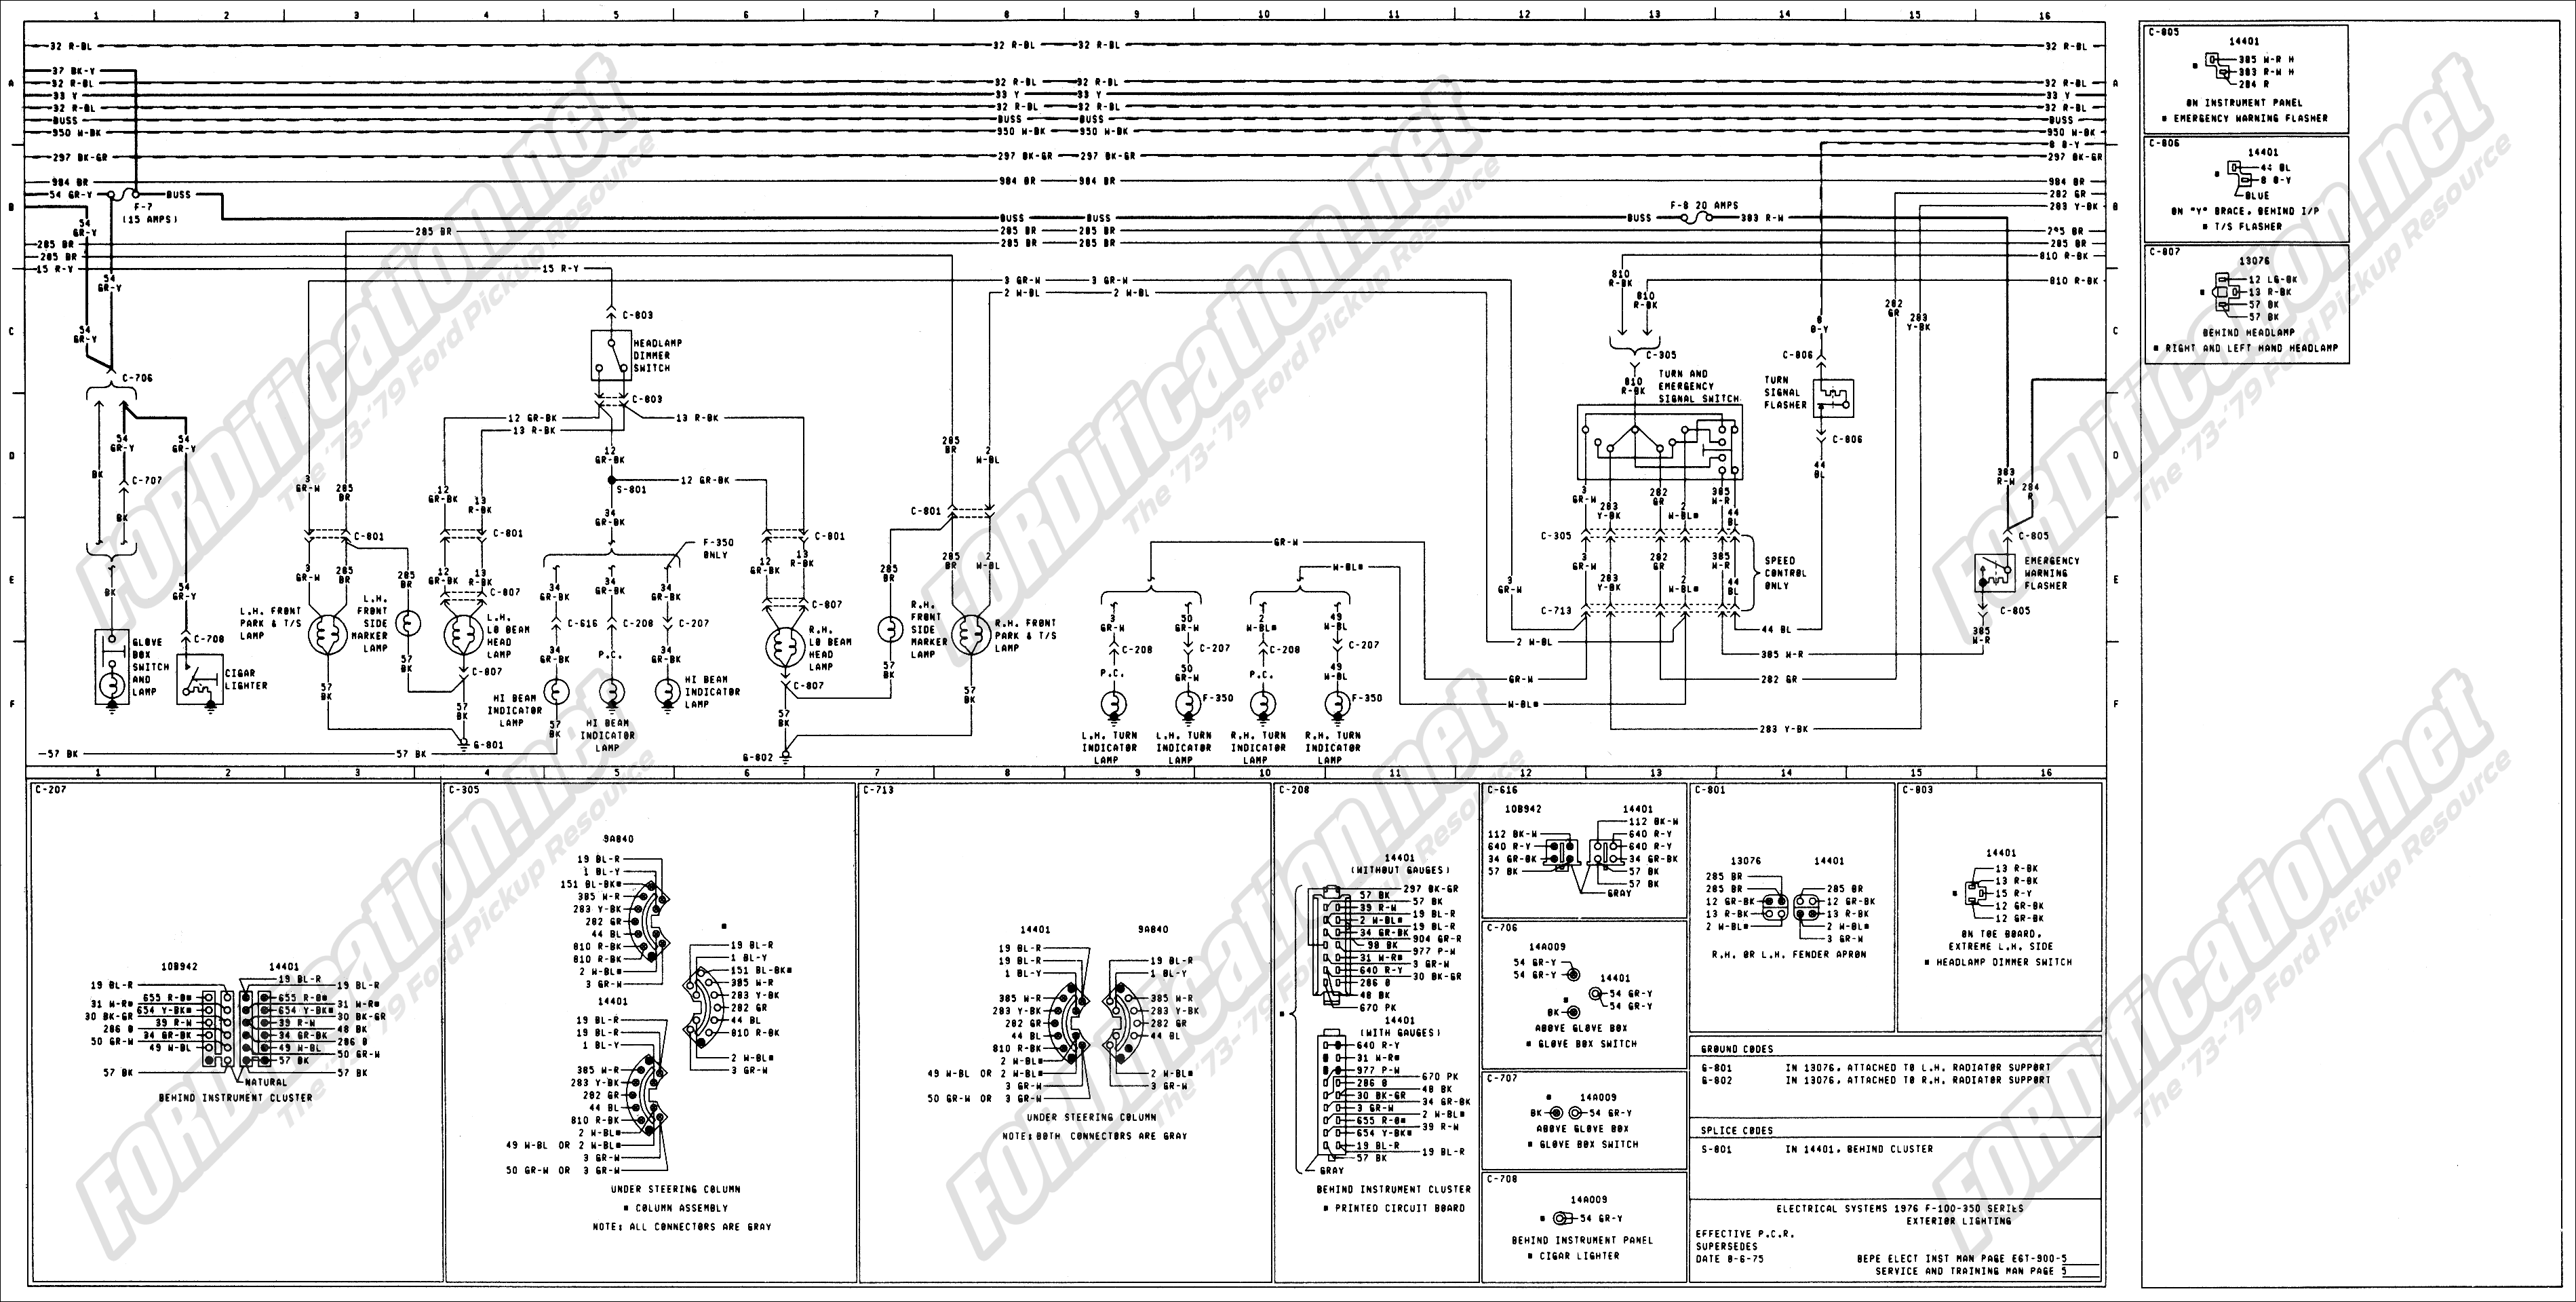 1973 1979 ford truck wiring diagrams schematics fordification net rh fordification net Mopar Electronic Ignition Wiring Diagram Typical Ignition Switch Wiring Diagram